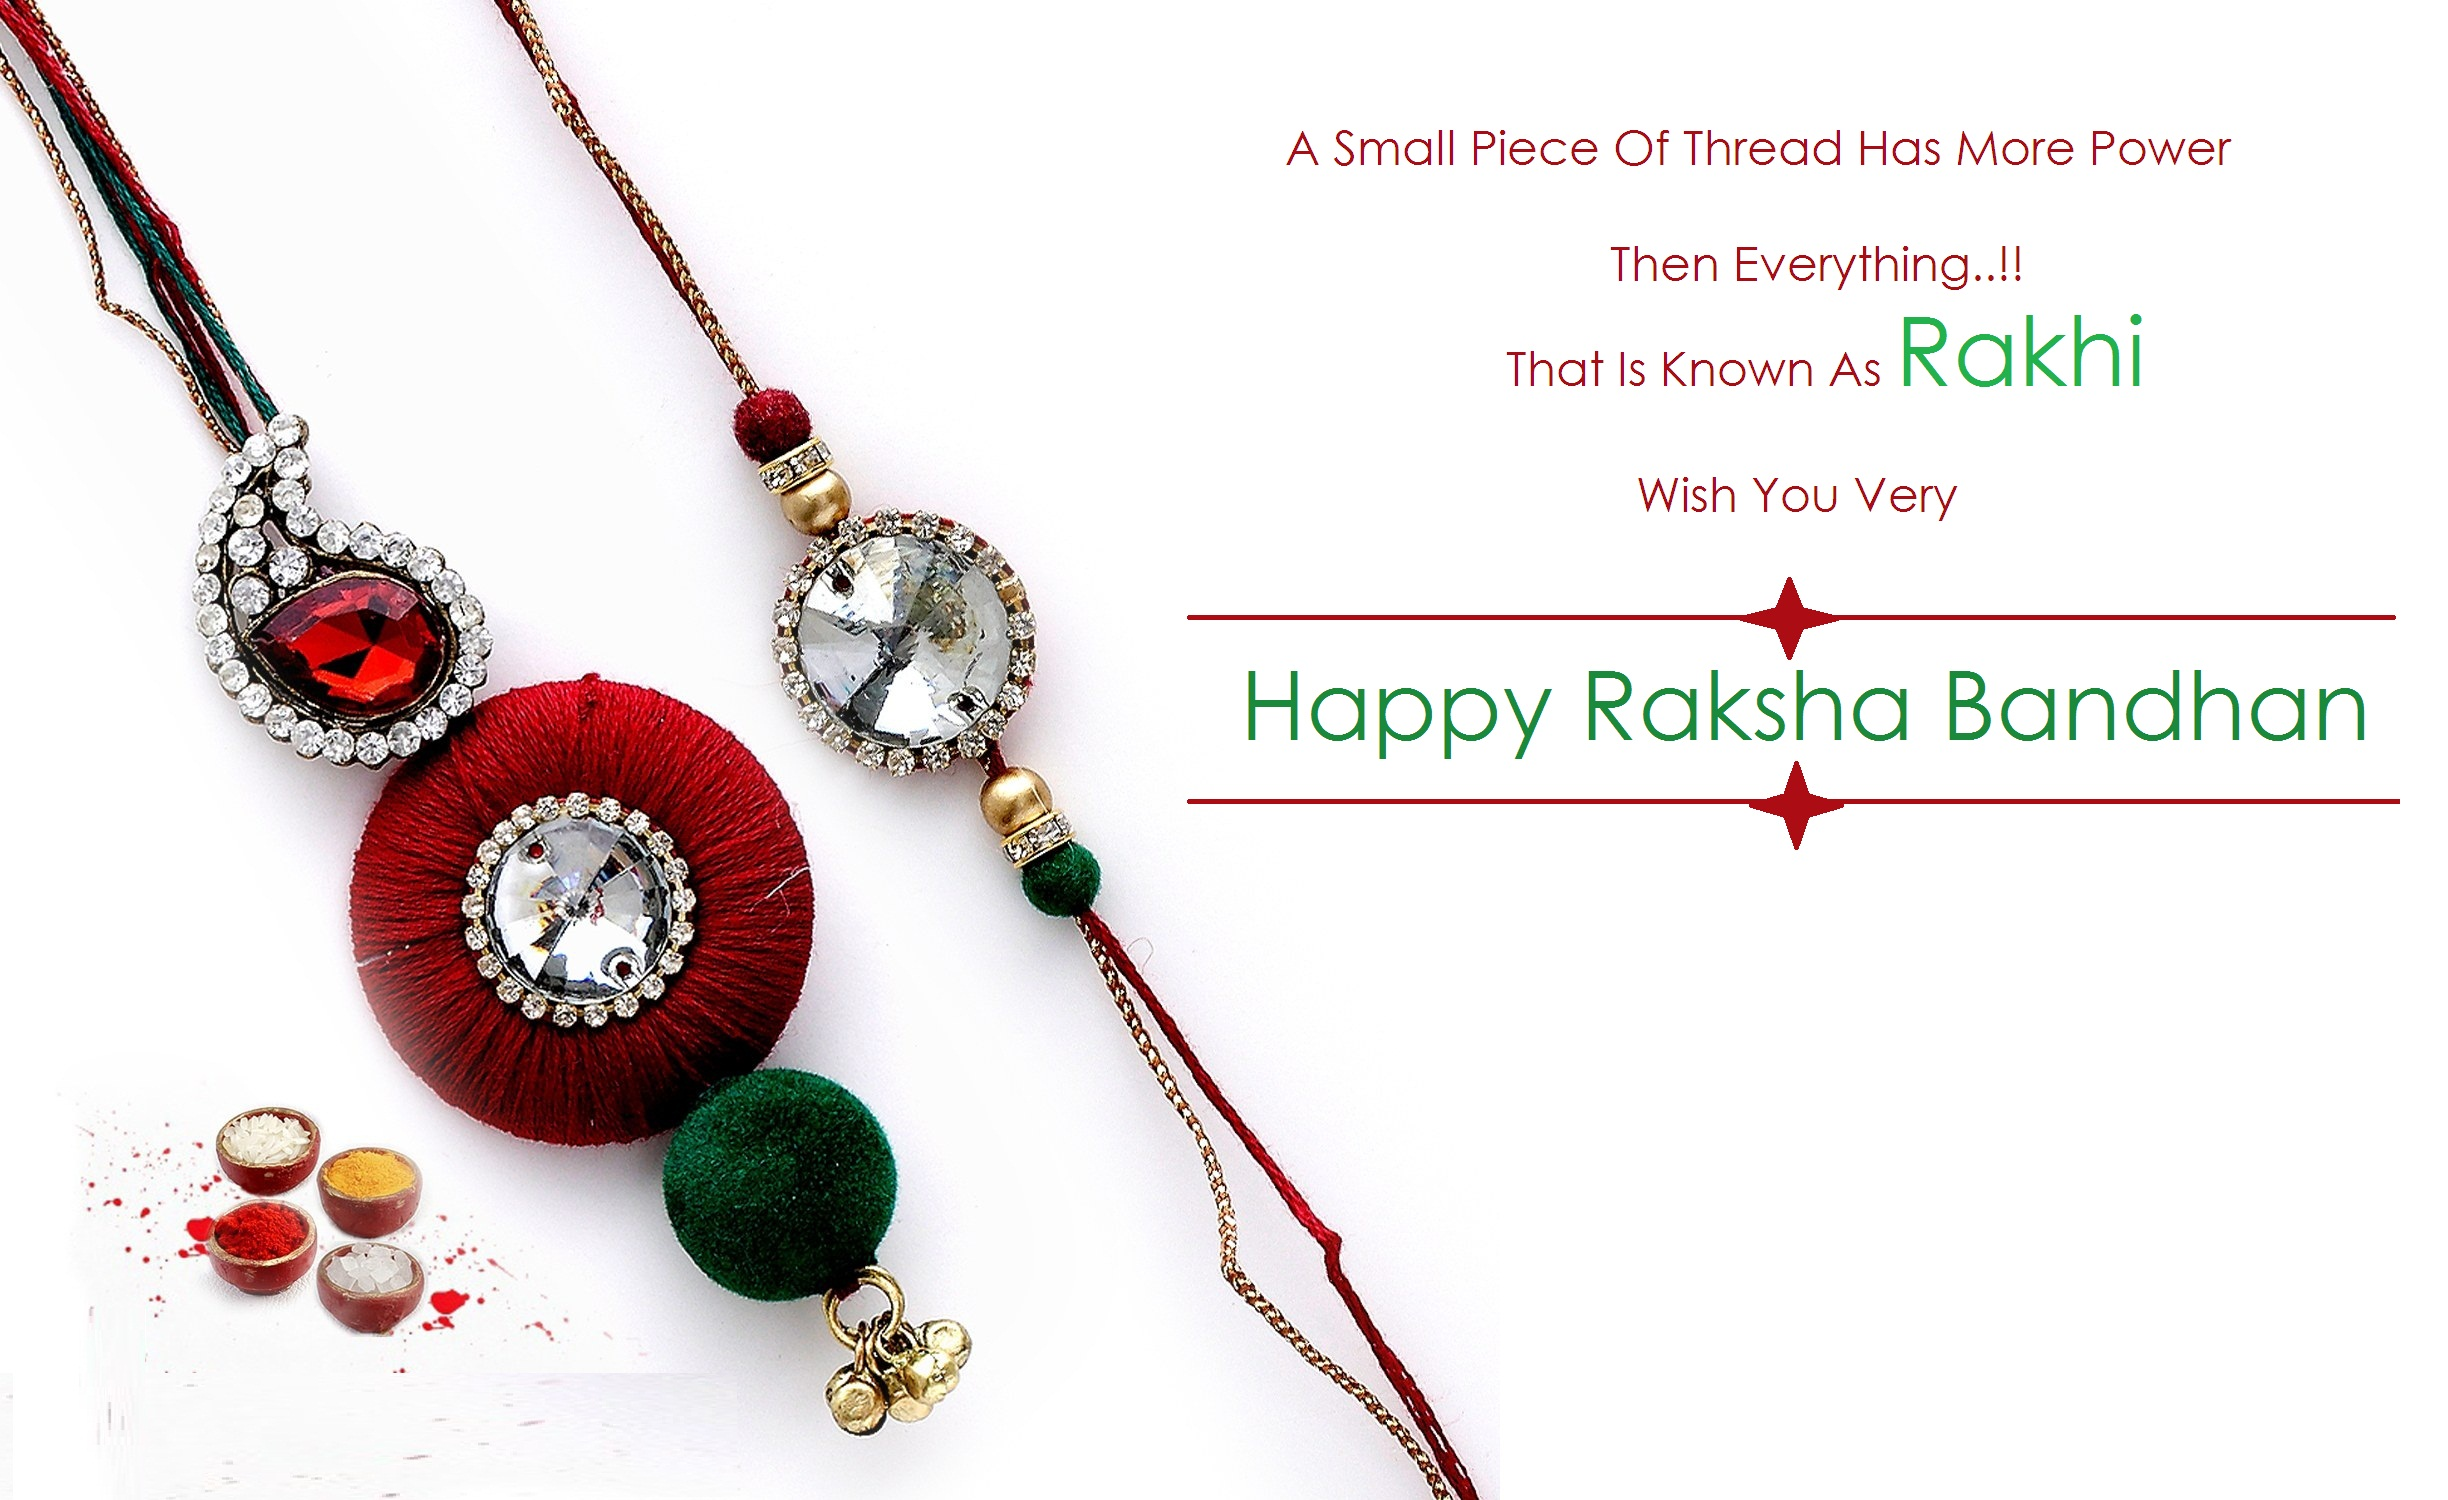 Make this Raksha Bandhan special for your sibling with Giftease.com